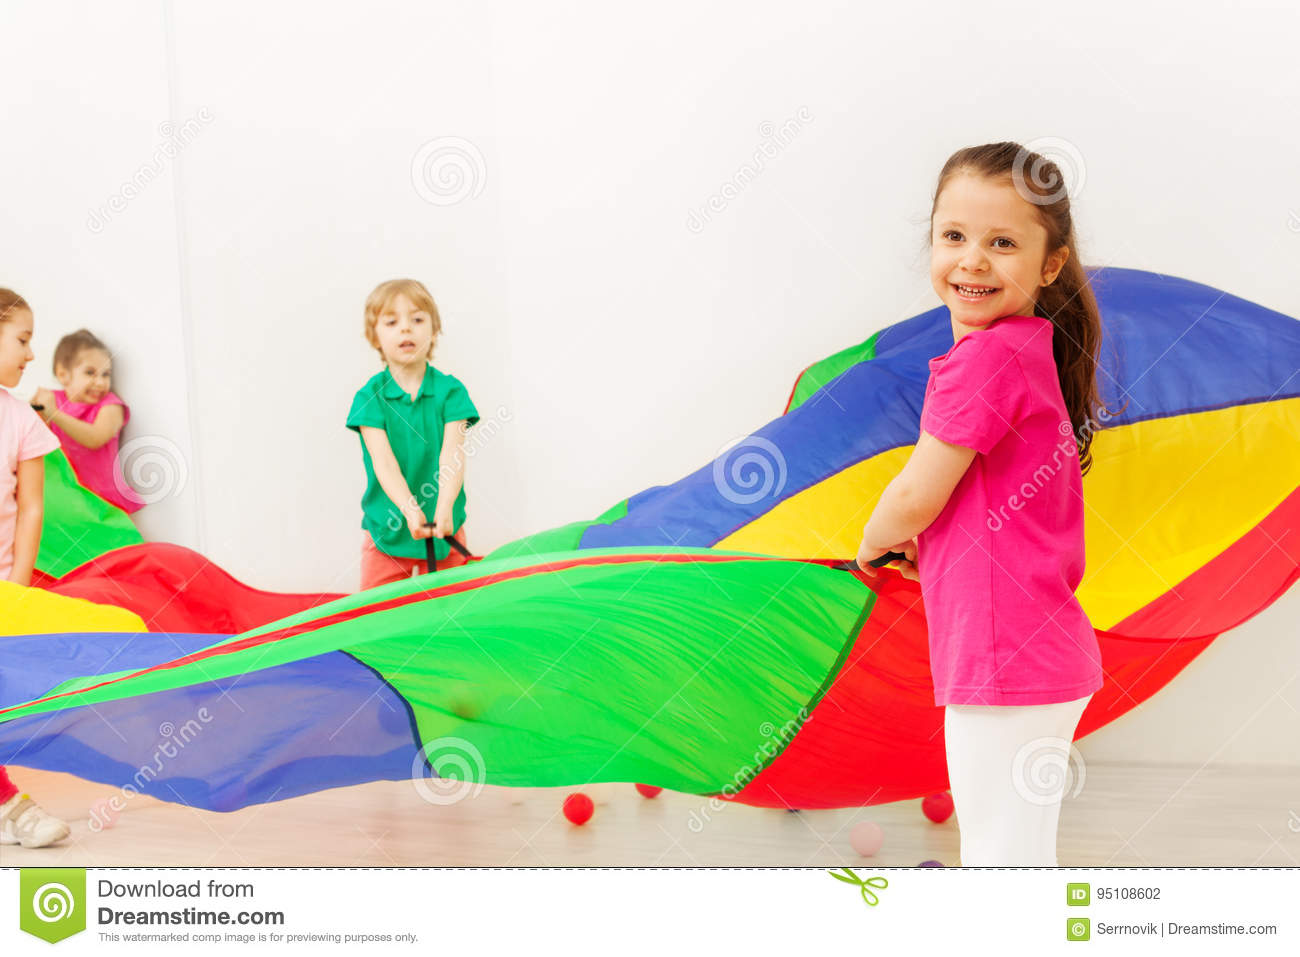 Happy girl playing with colorful parachute in gym